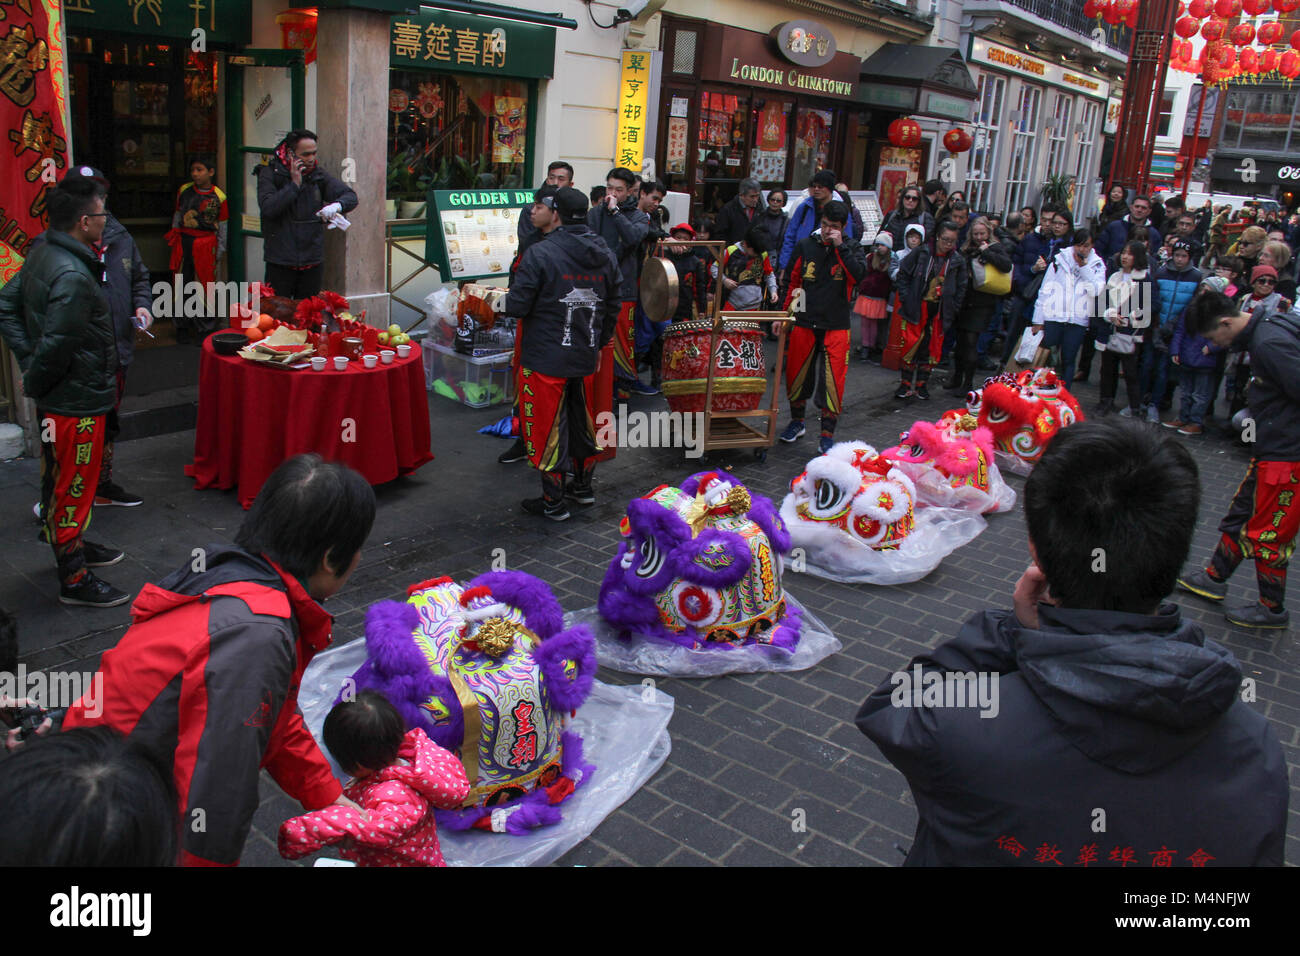 London, UK. 17th Feb, 2018. Entertainers prepare their Chinese Dragon props in China Town London on 17 February - Stock Image